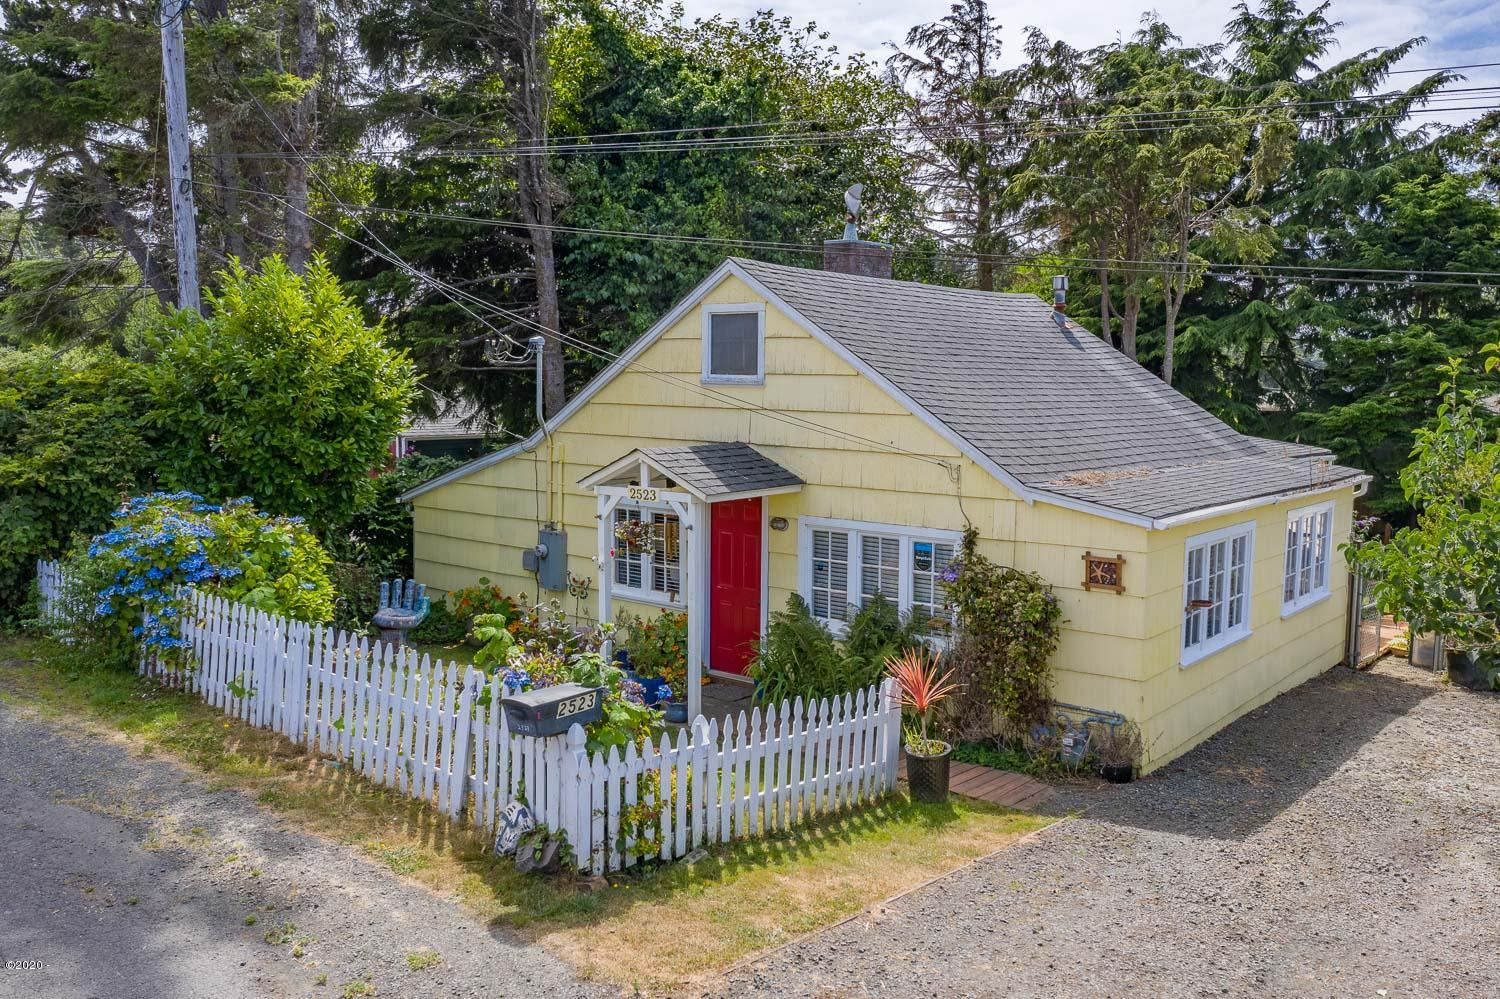 2523 NW Oar Ave, Lincoln City, OR 97367 - DJI_0876-HDR